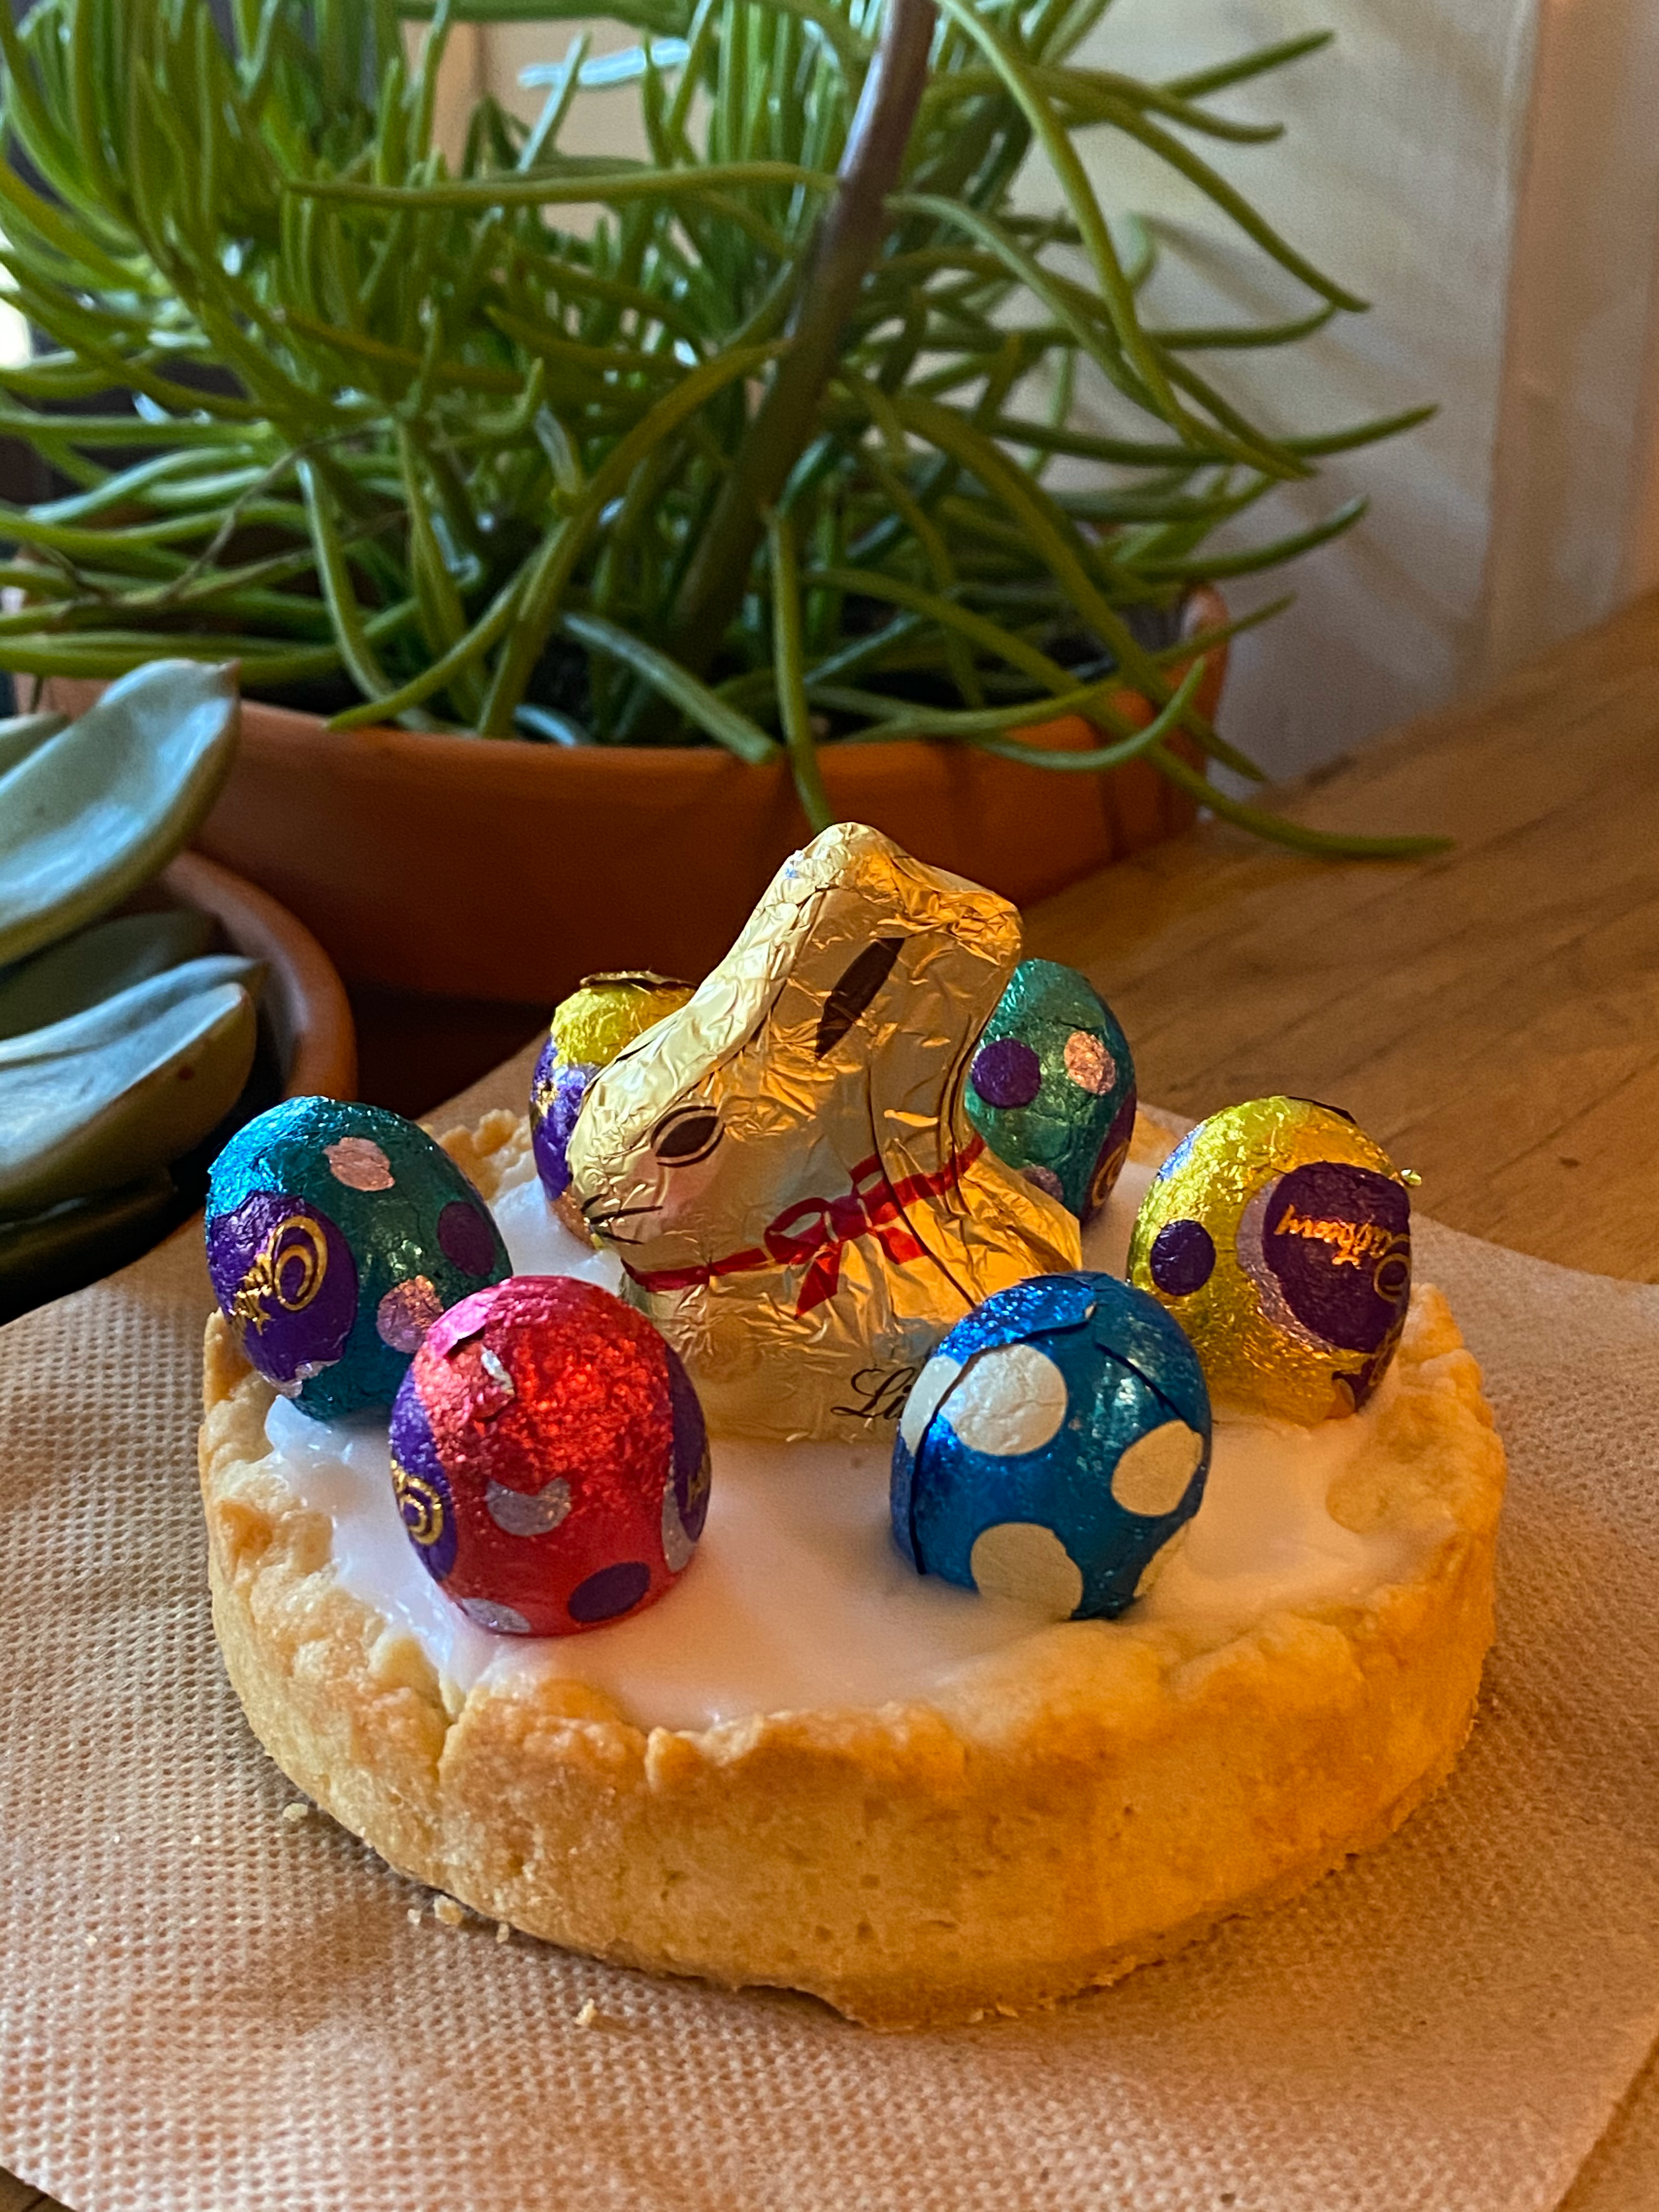 German Easter baking and decorations